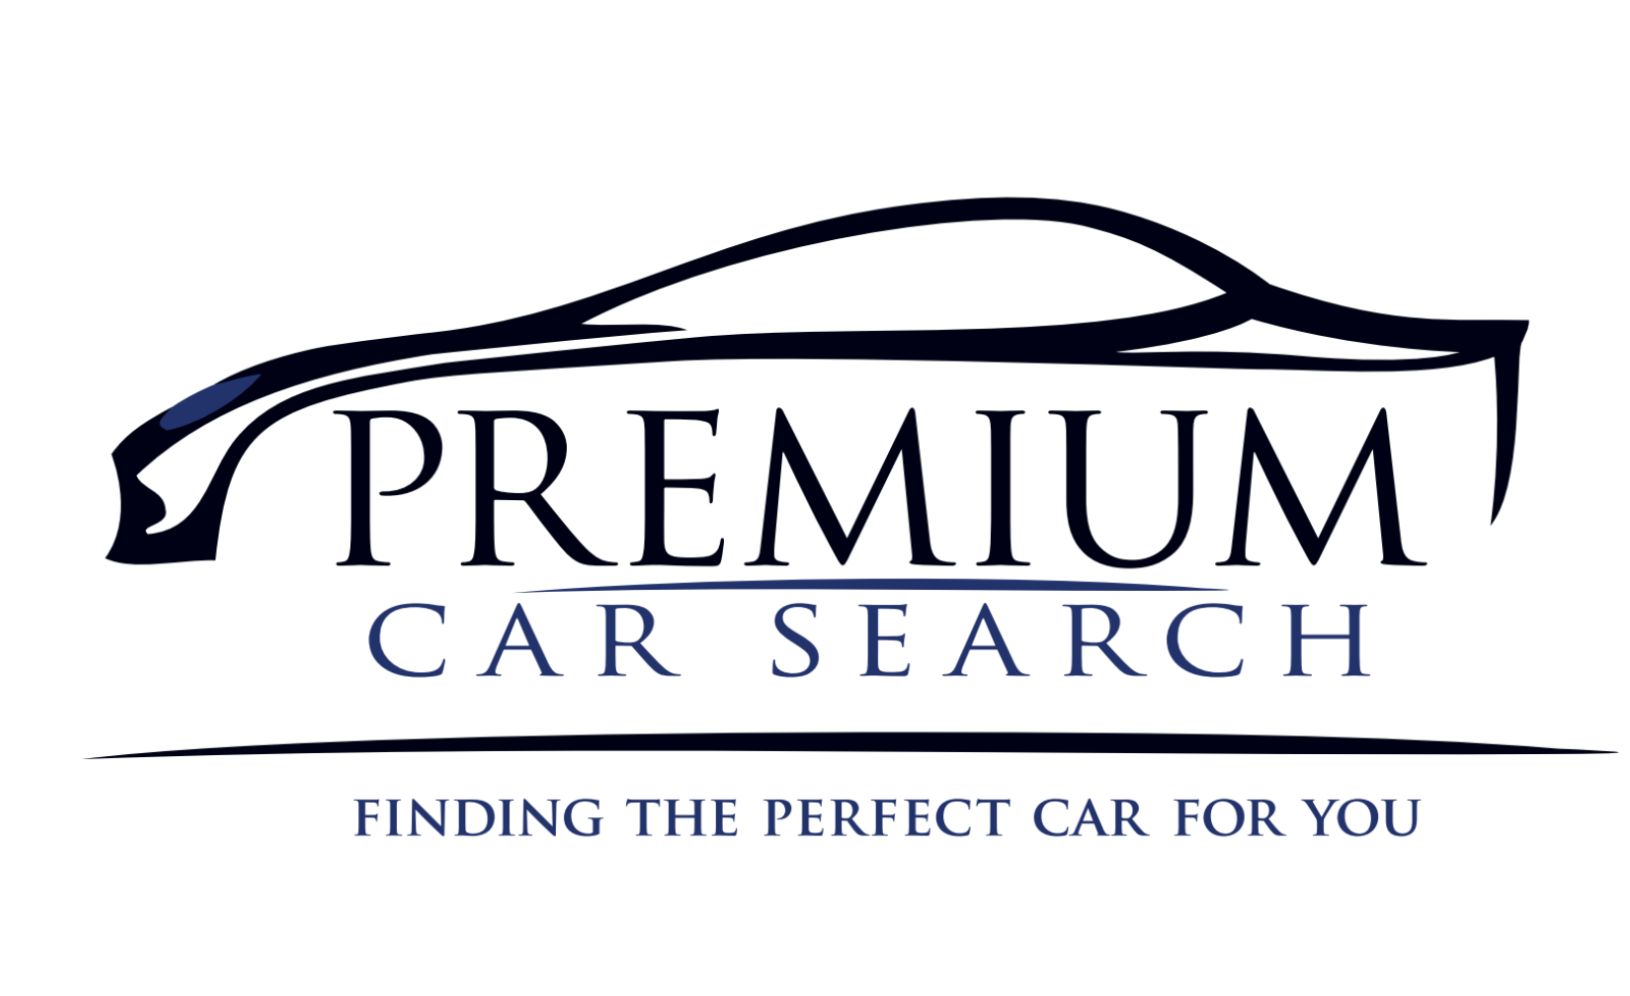 How to get a best price on a new car